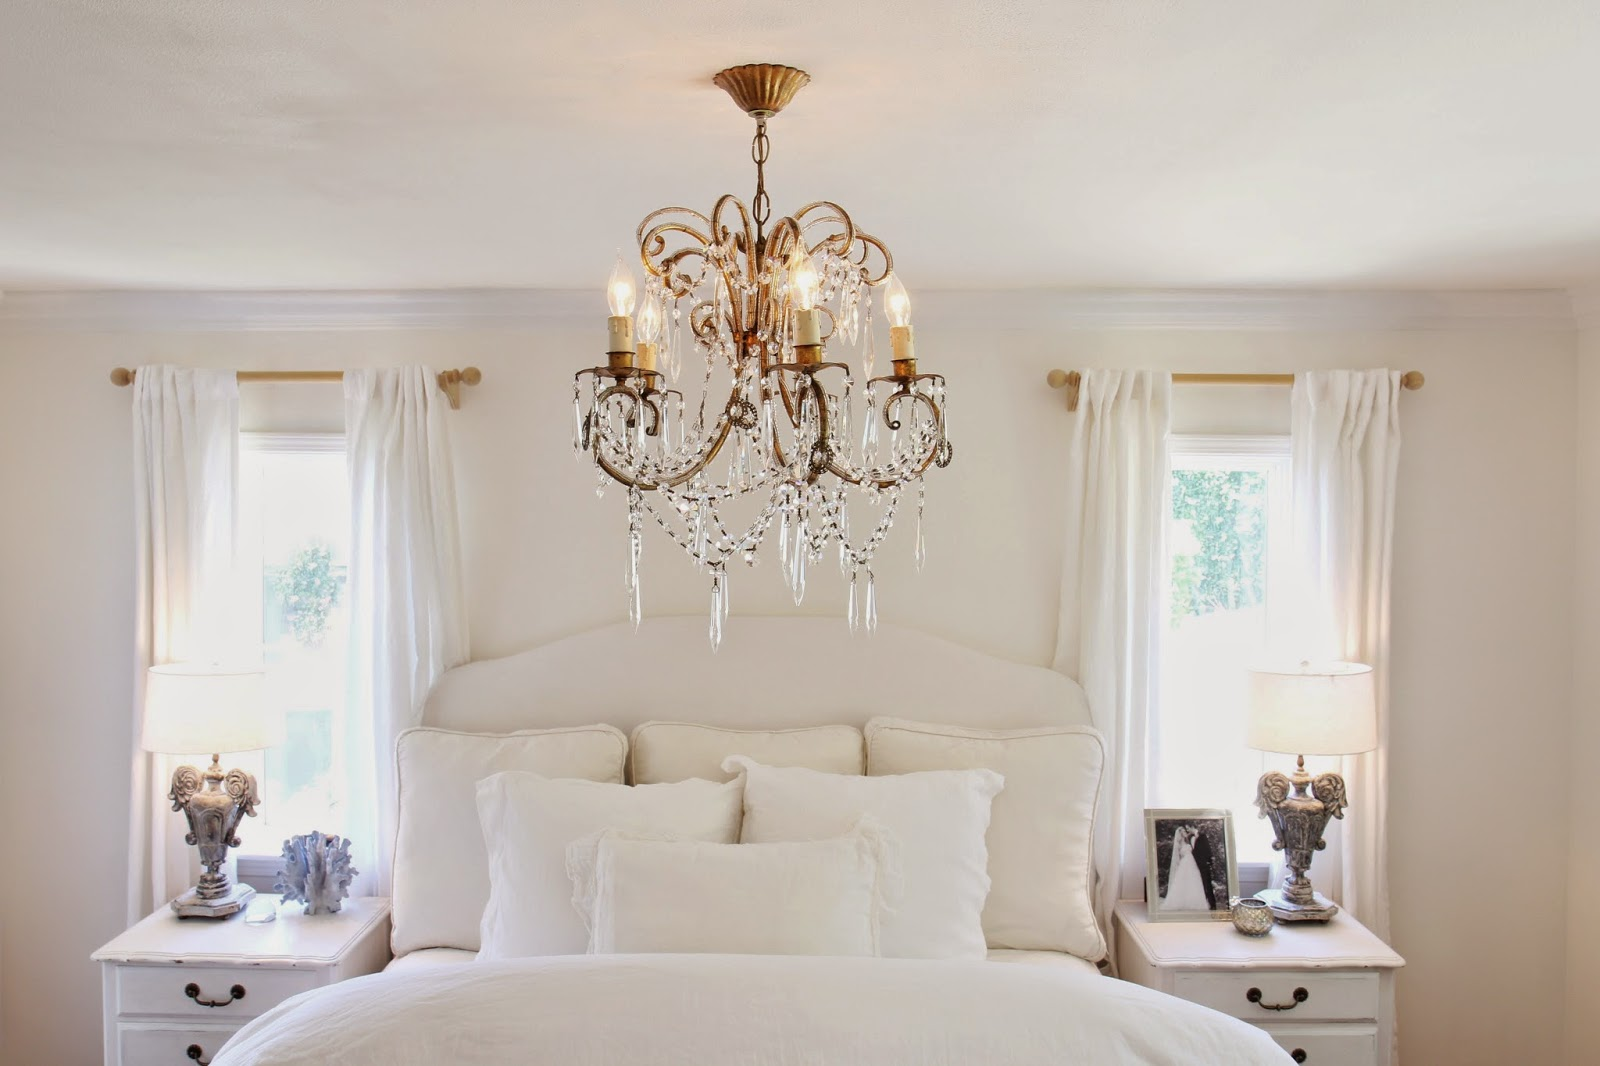 Nora 39 s nest a chandelier for the master bedroom Chandelier in master bedroom